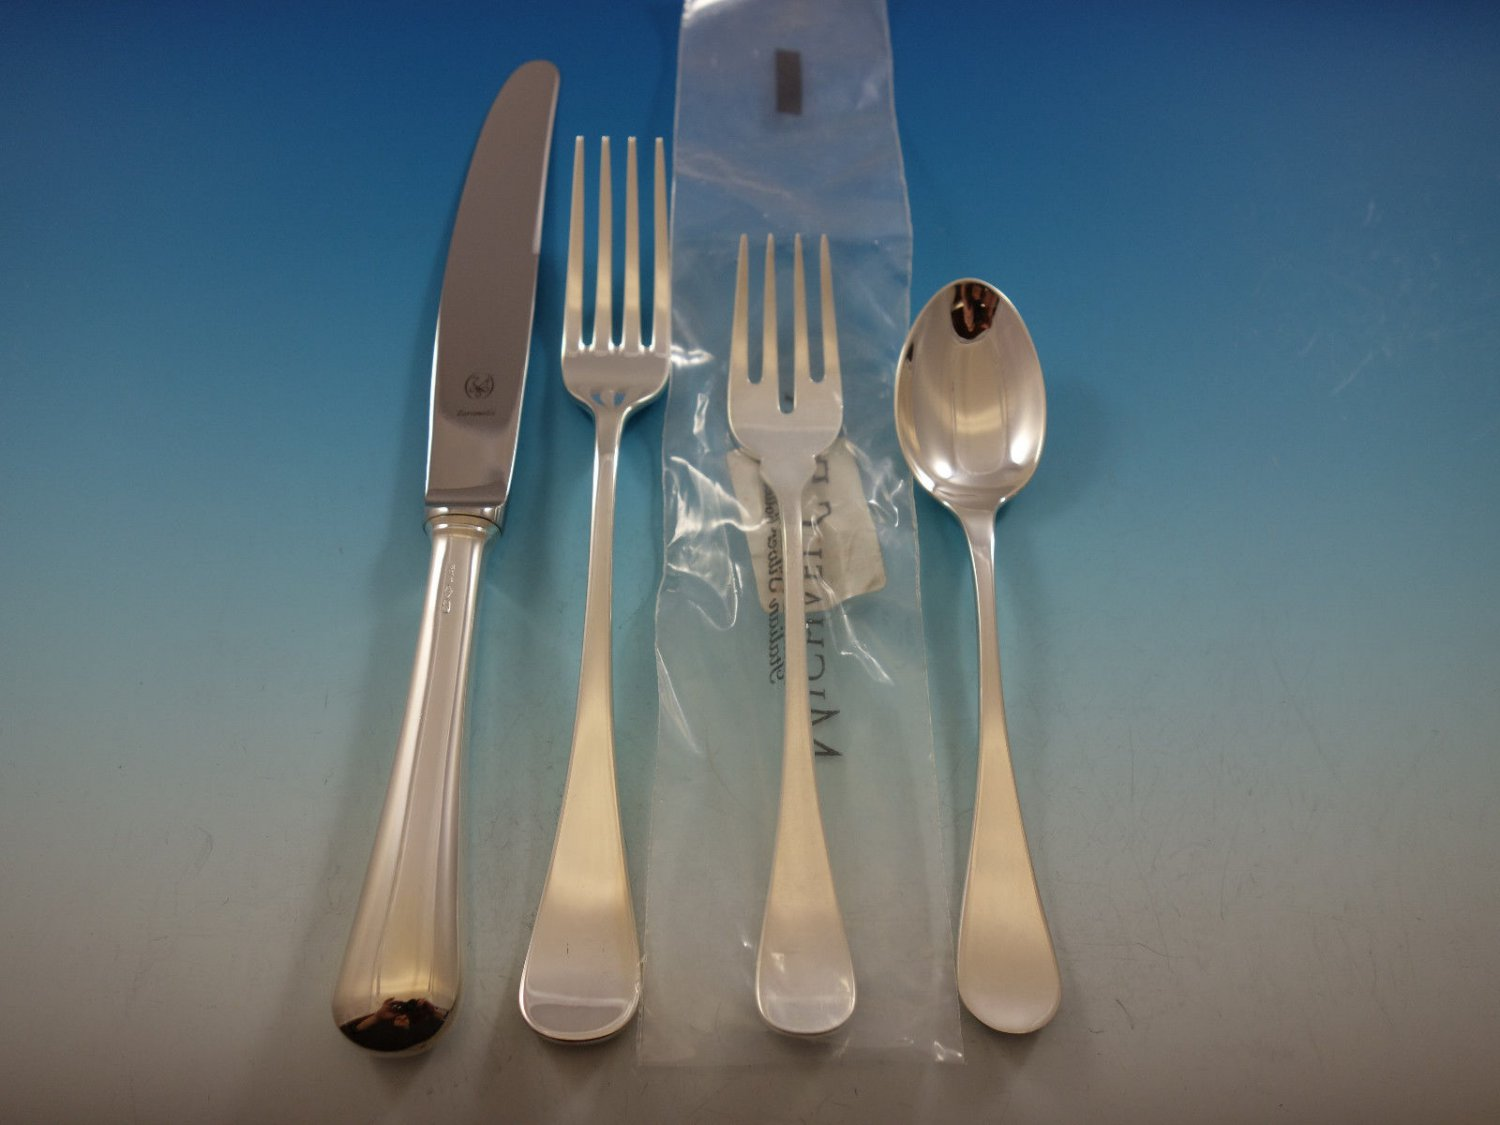 Spagnolo by Zaramella Italy Sterling Silver Flatware Set 12 Dinner 51 Pcs New